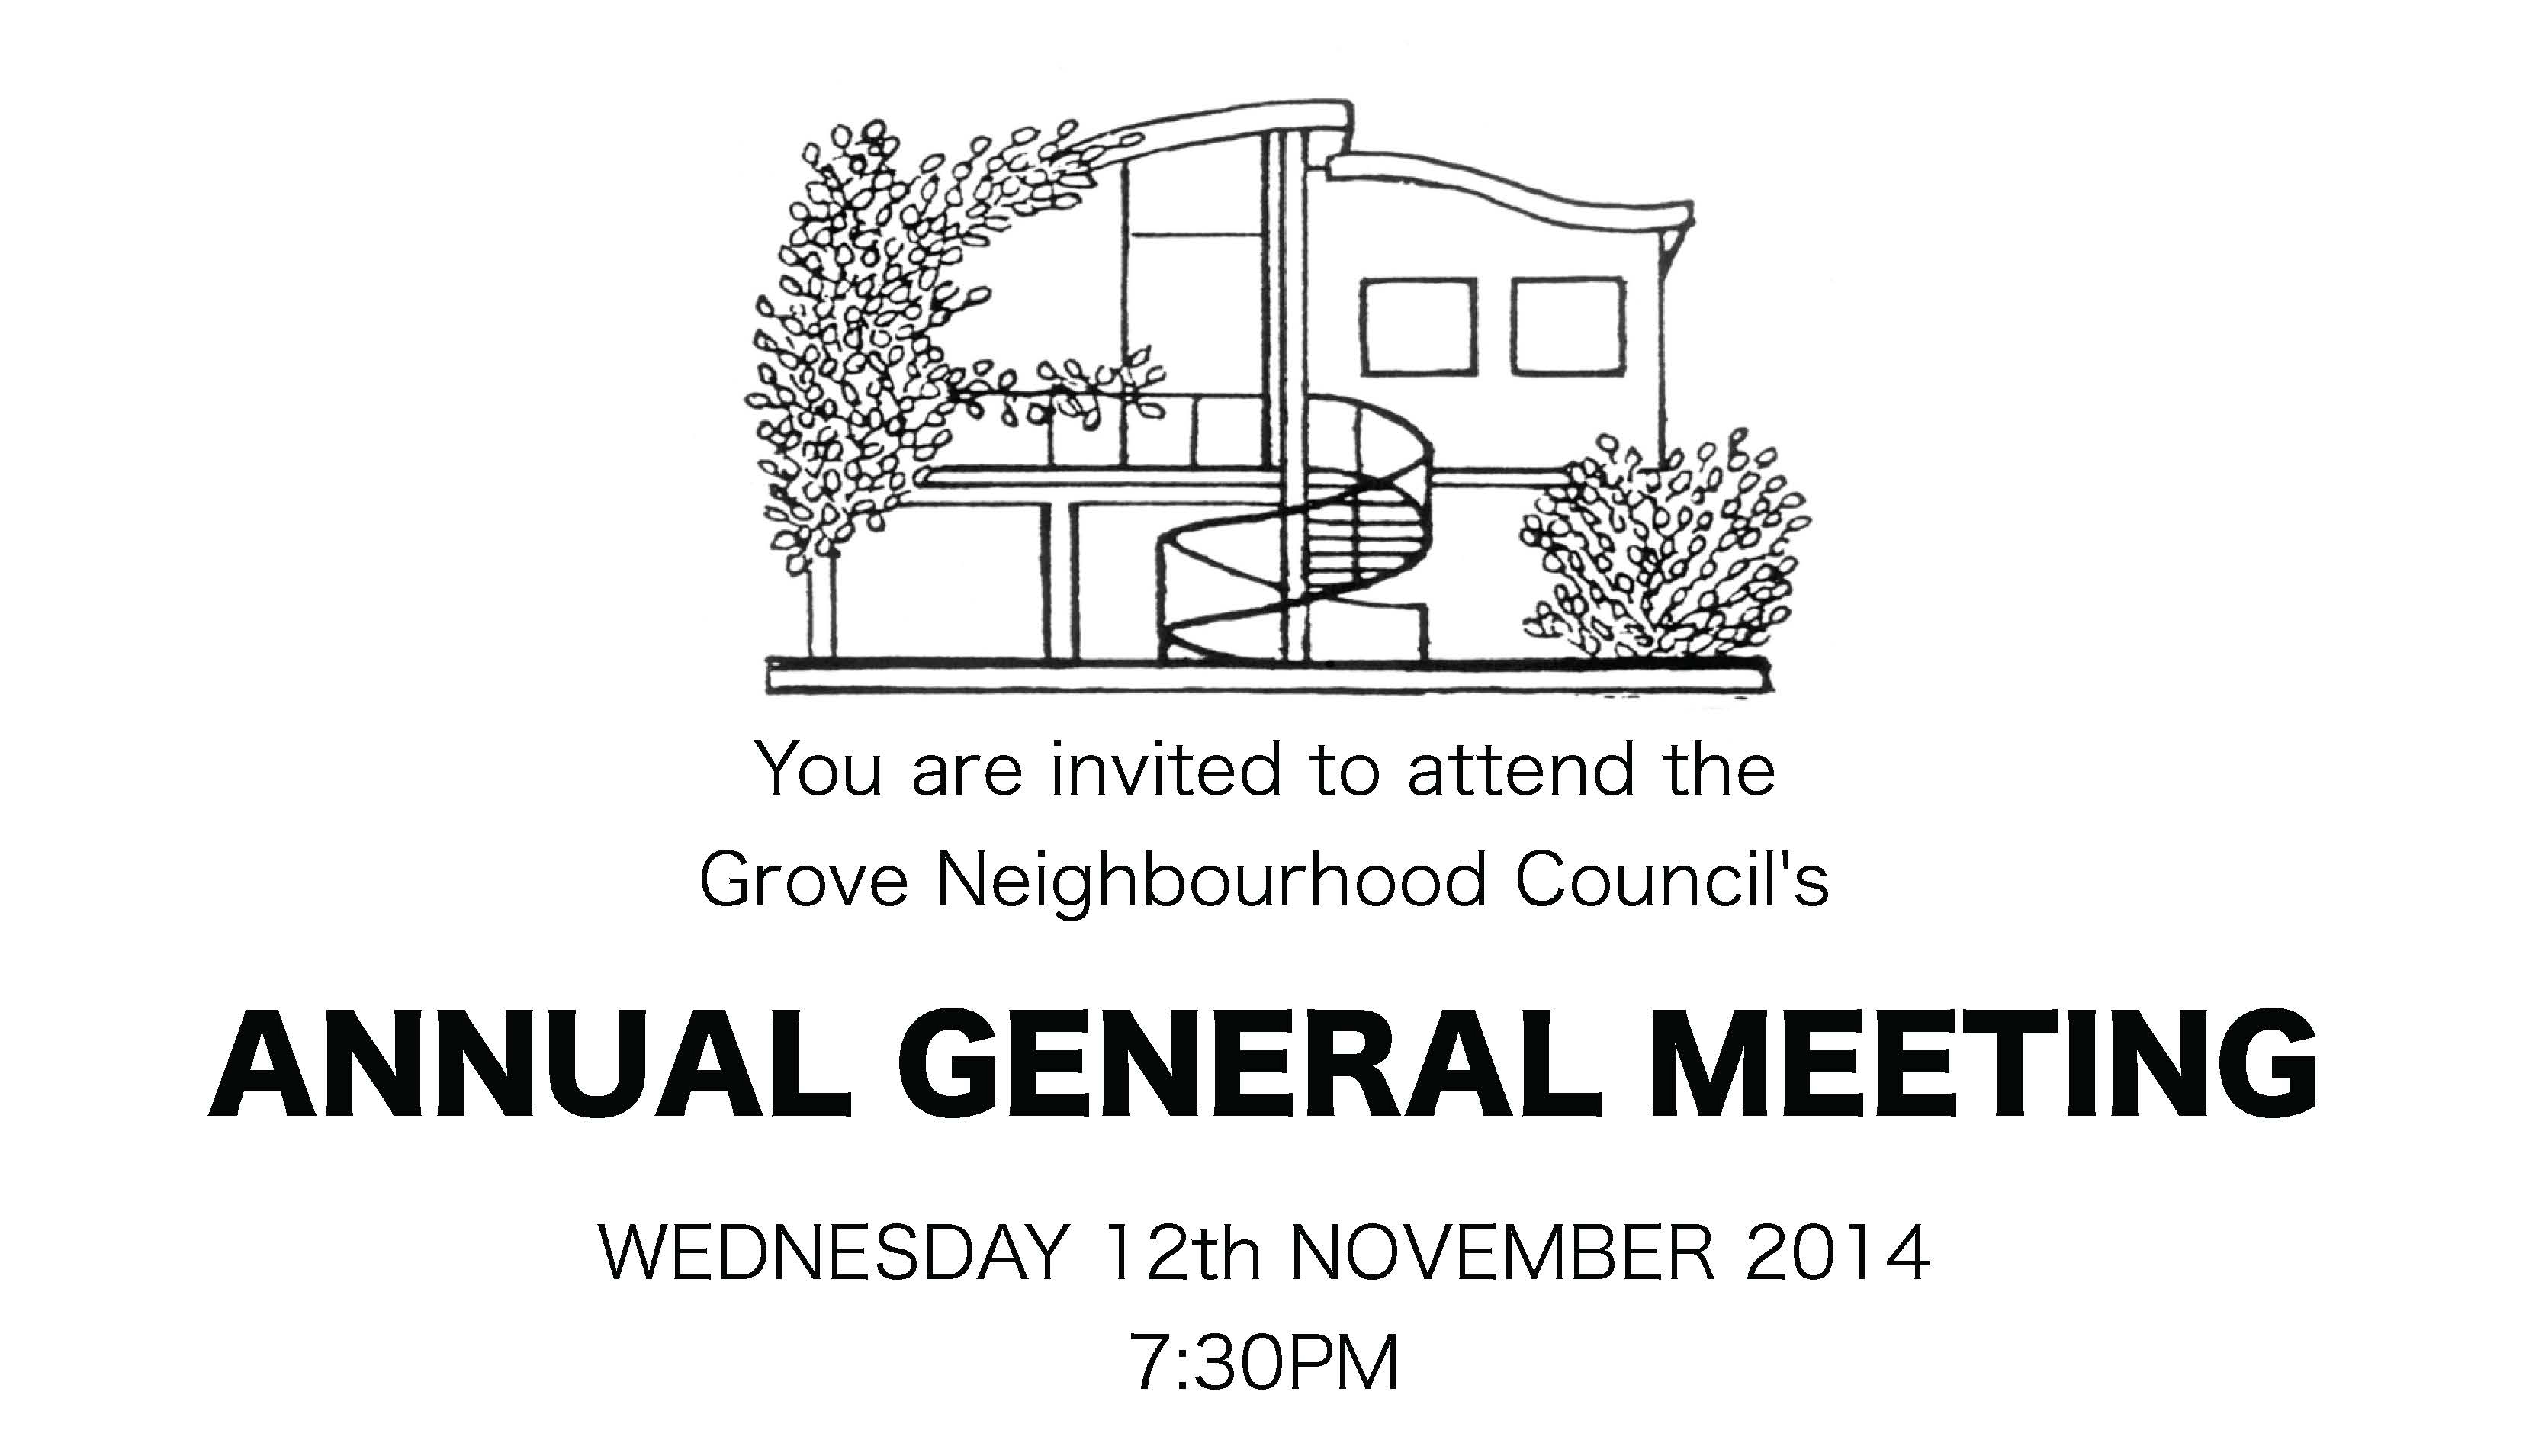 Grove Neighbourhood Centre Annual General Meeting 12th November